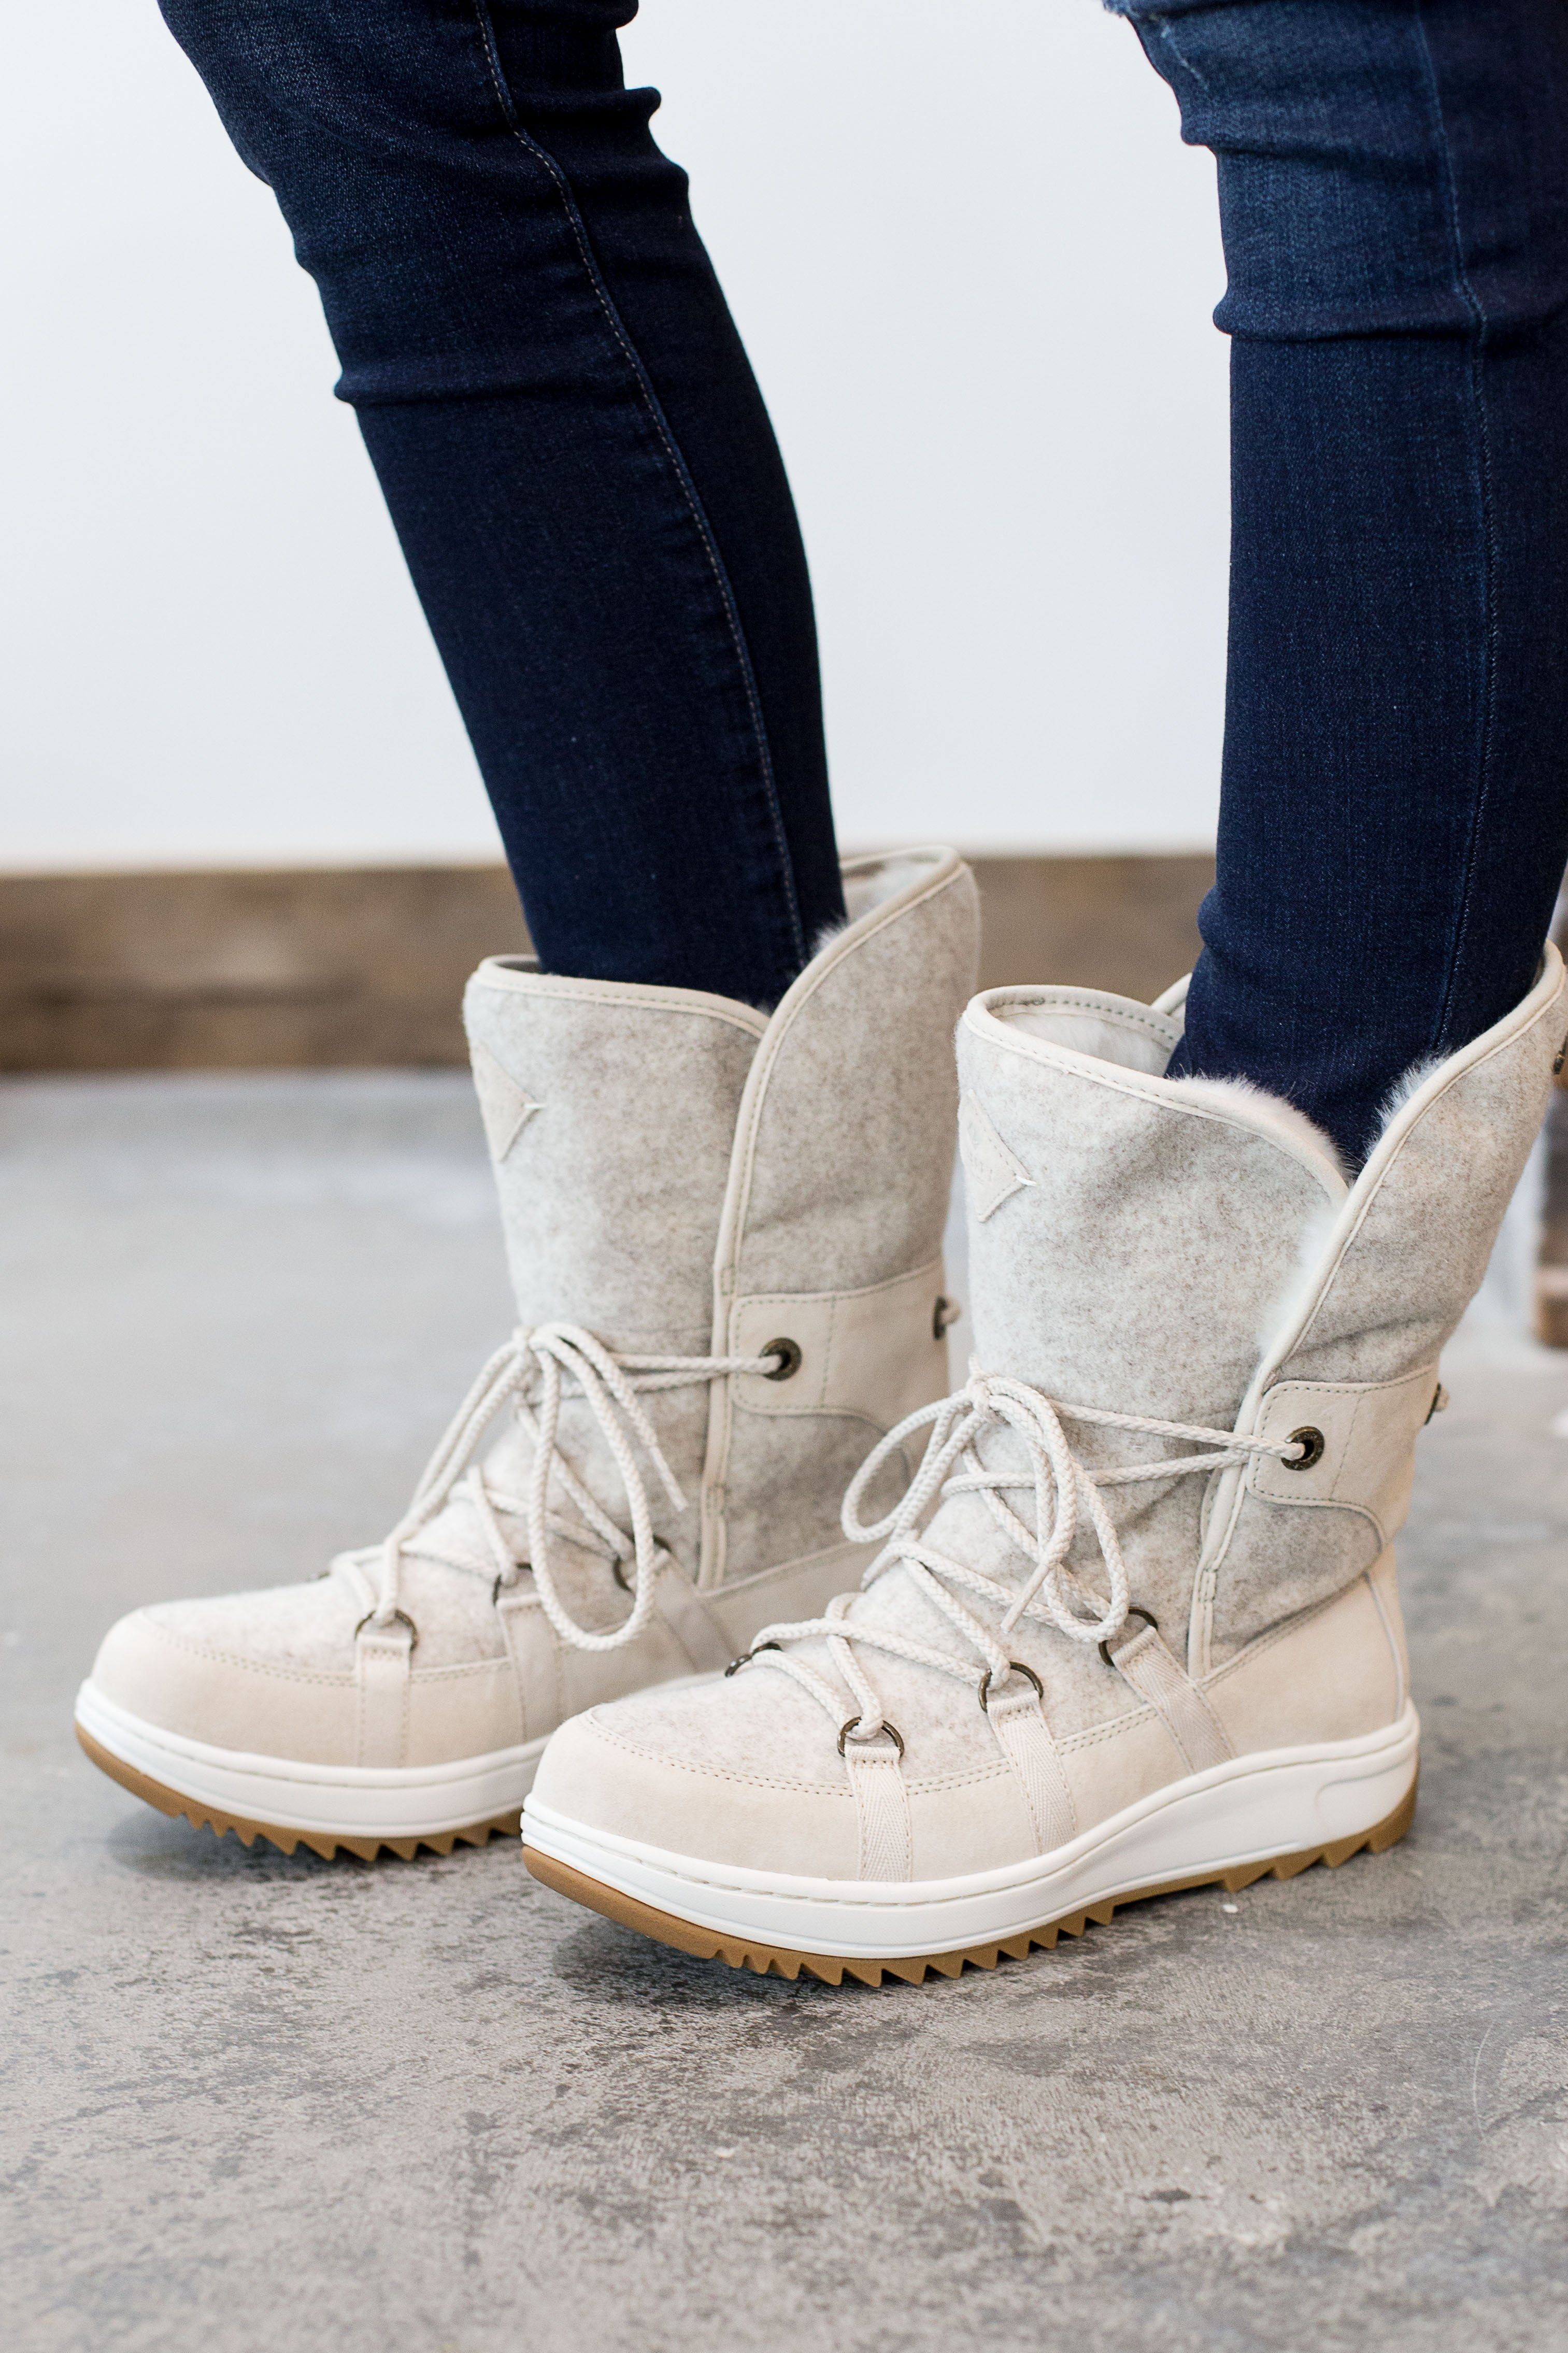 Sperry - Powder Ice Cap Boots | Boots